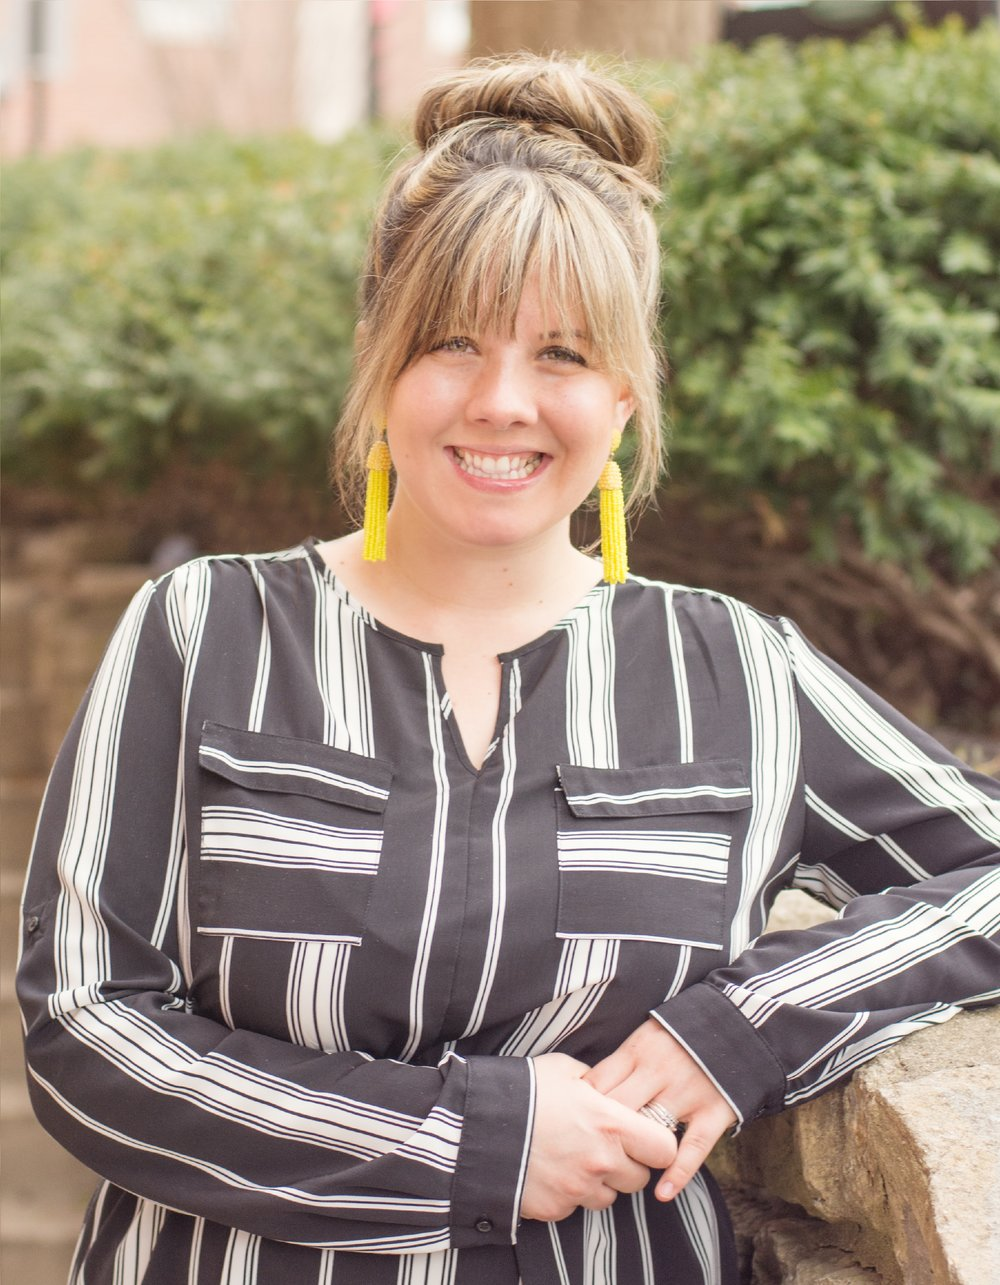 Kacey Widmeyer, M.S., International Board Certified Lactation Consultant, Postpartum Doula  & Labor Doula